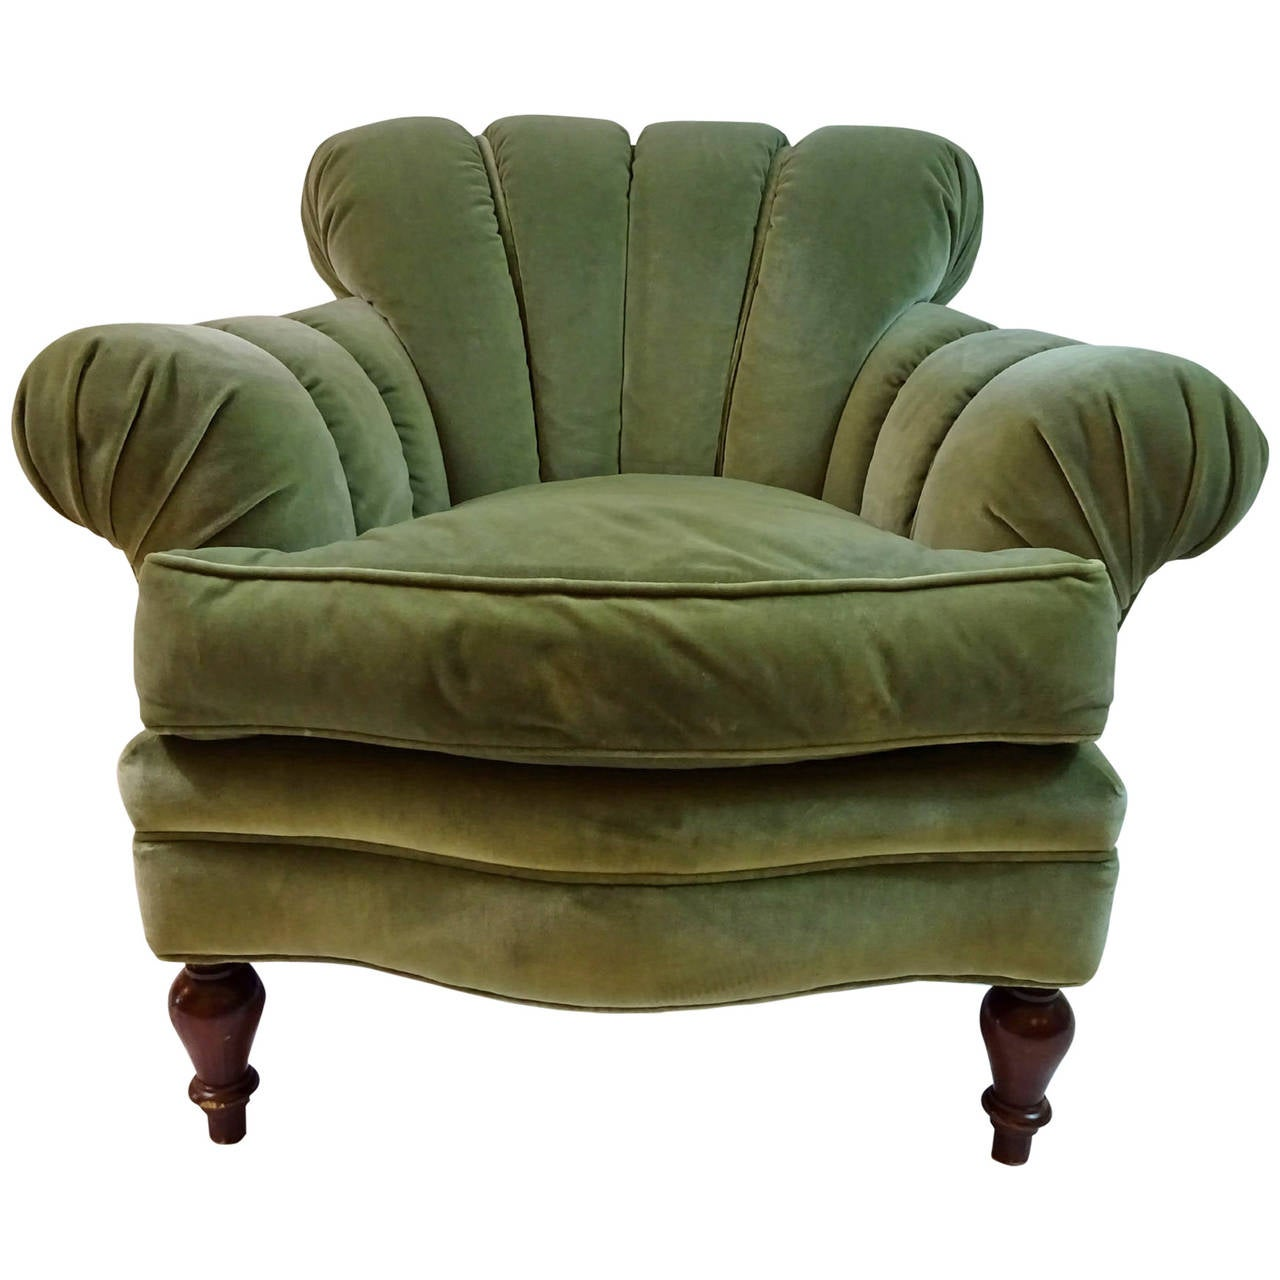 Late 20th C Art Deco Style Club Chair At 1stdibs